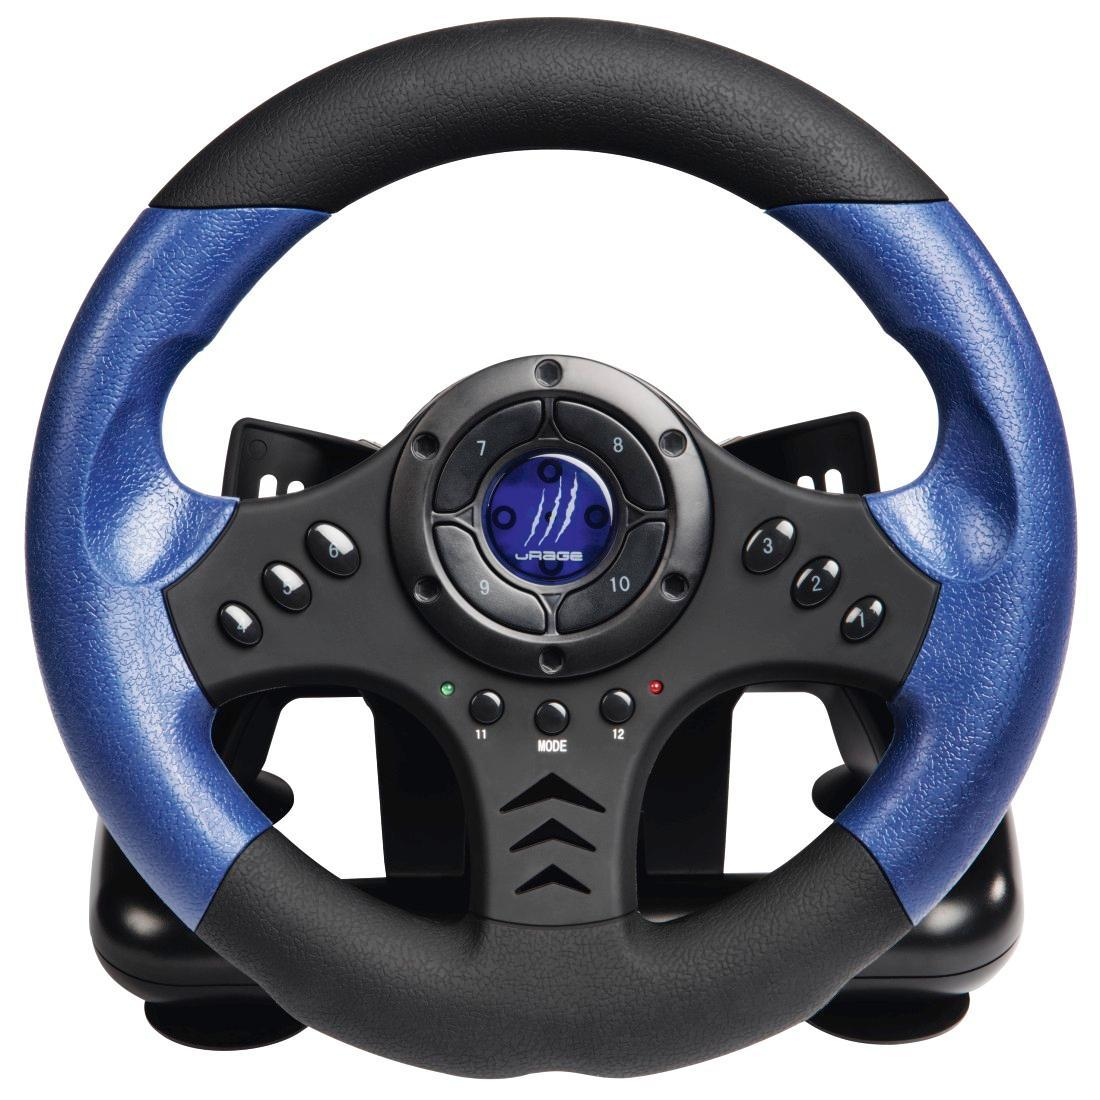 urage lenkrad f r pc racing wheel schwarz blau. Black Bedroom Furniture Sets. Home Design Ideas